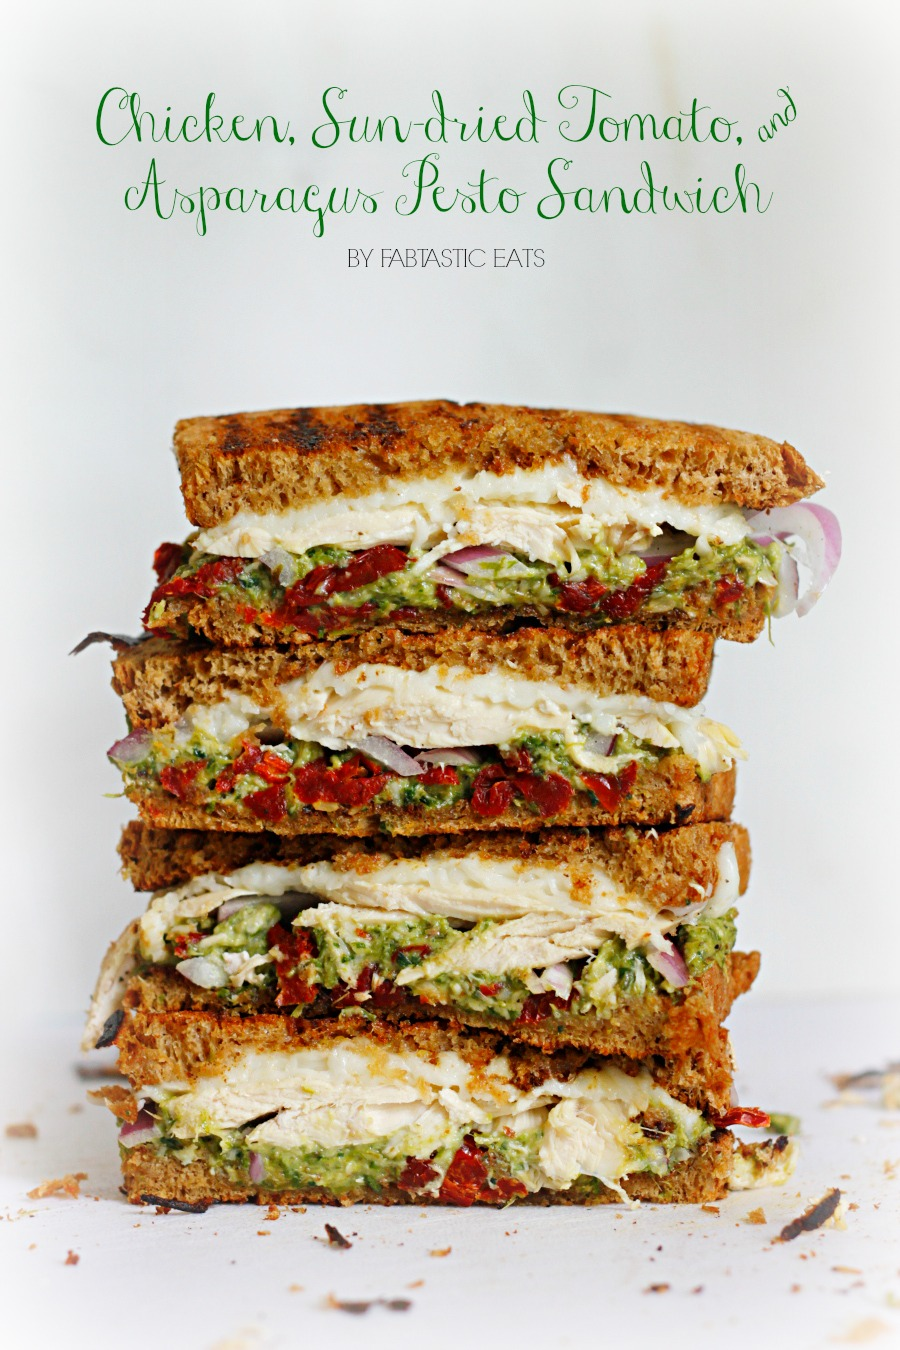 Chicken, Sun-dried Tomato, & Asparagus Pesto Sandwich | Fabtastic Eats